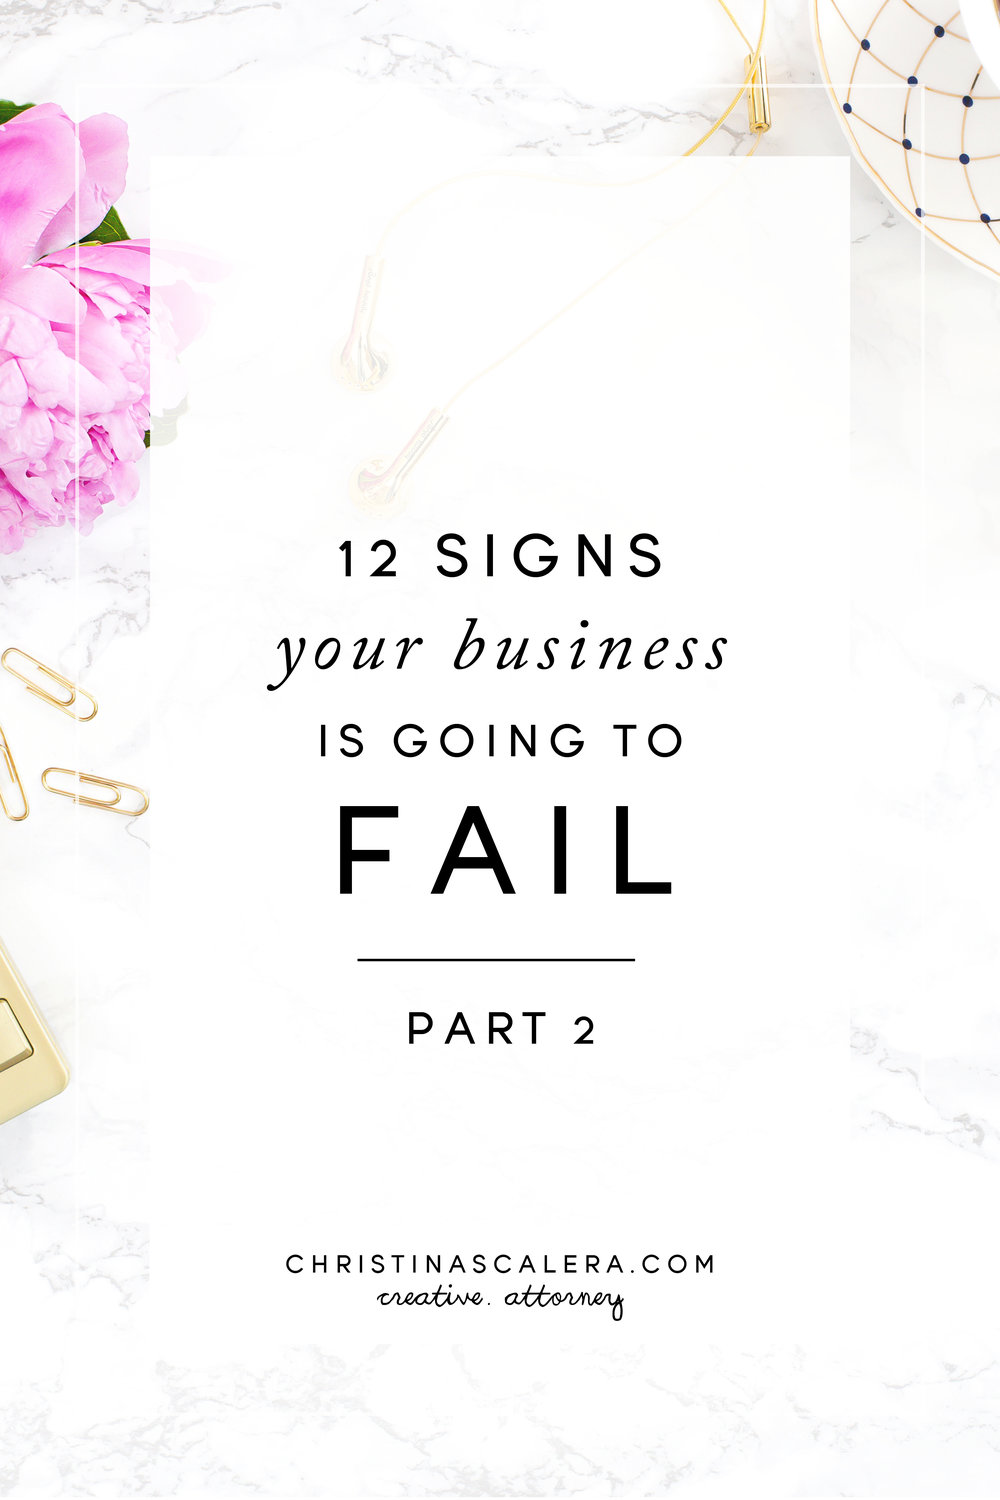 12 Signs your business is going to fail, part 2!